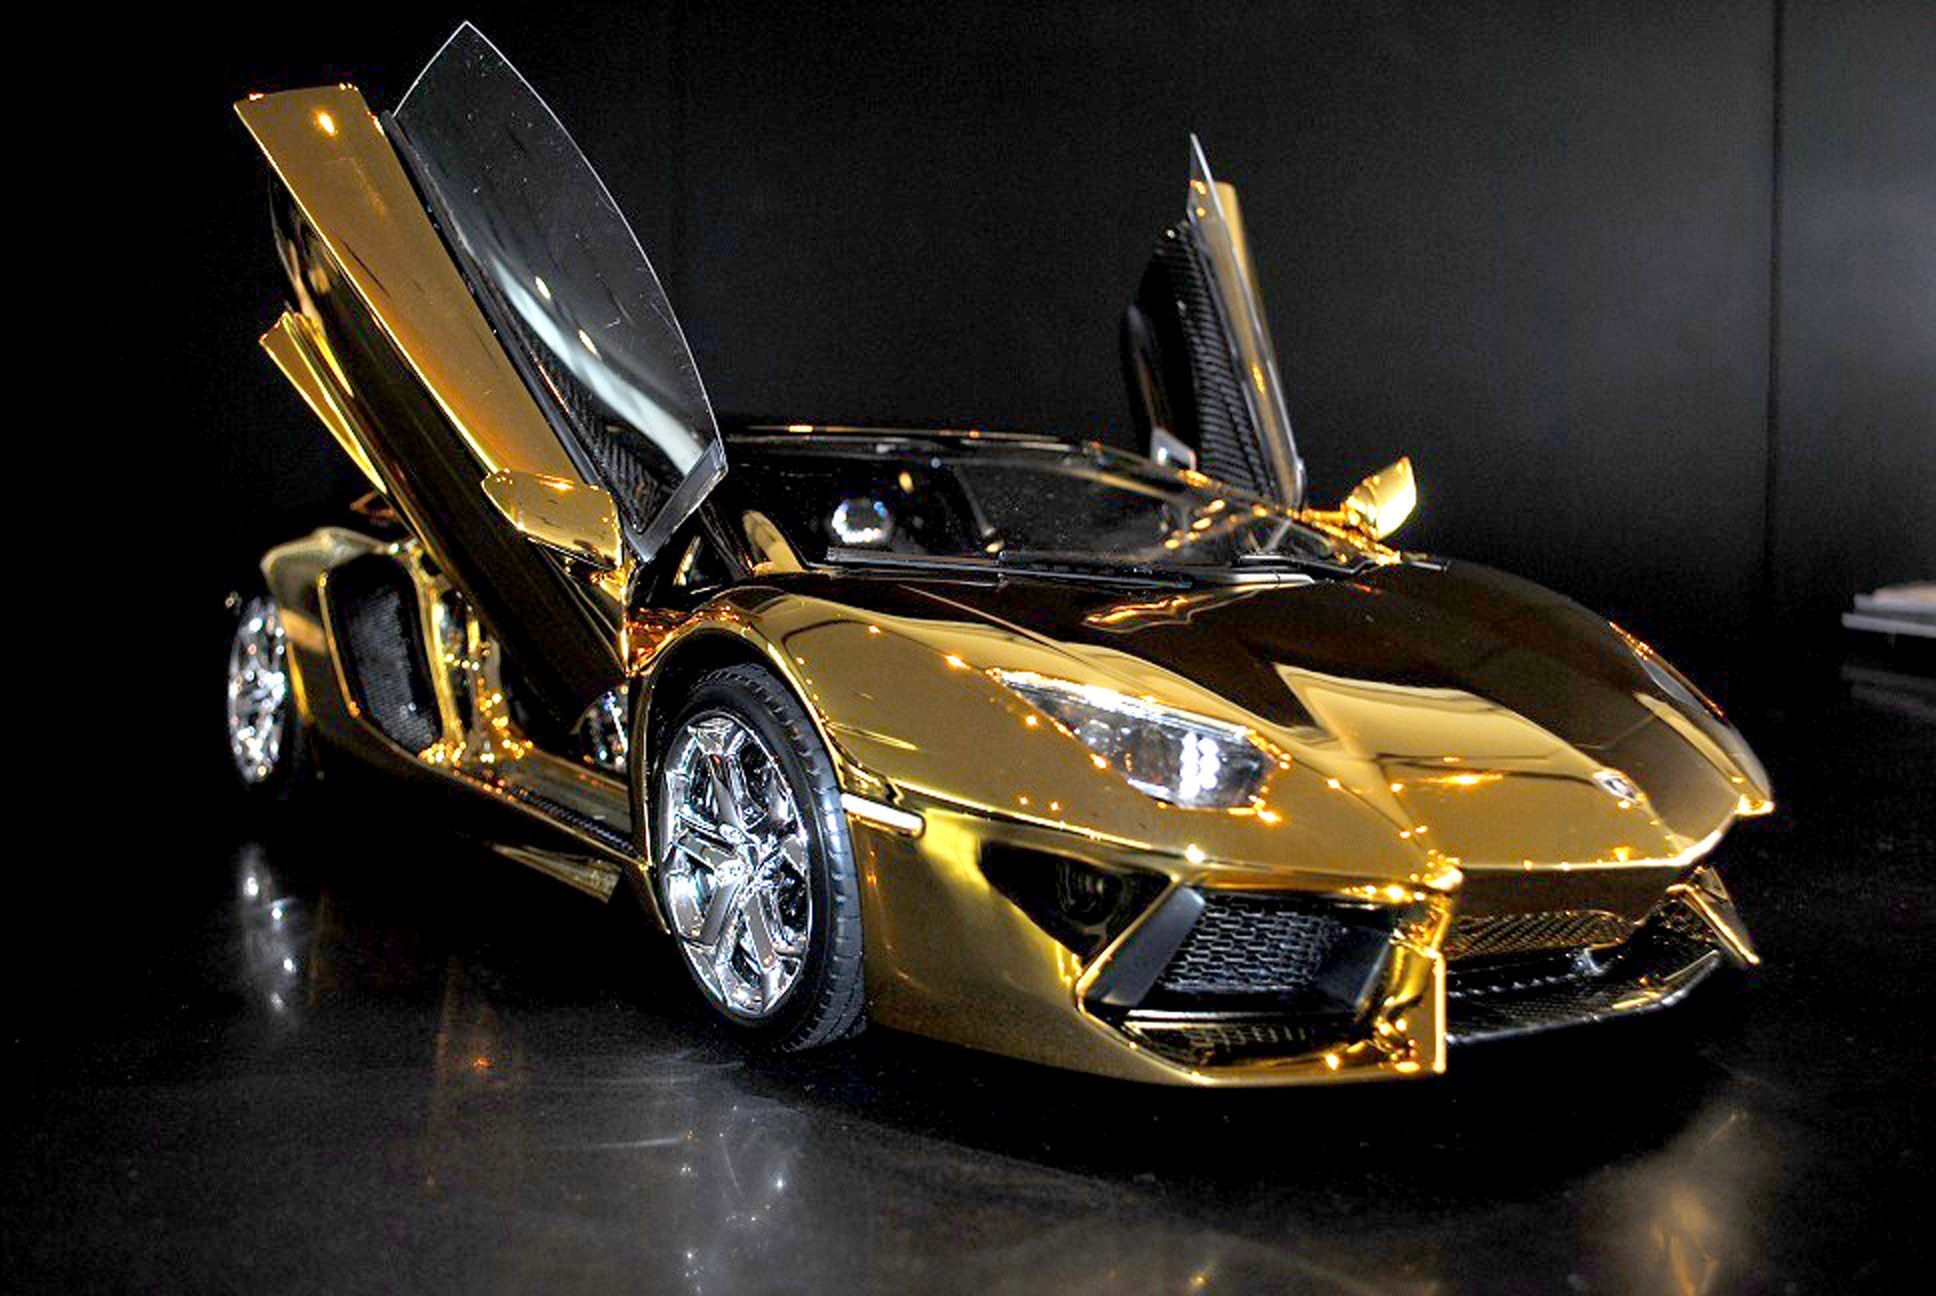 A solid gold and 6 other supercars New York